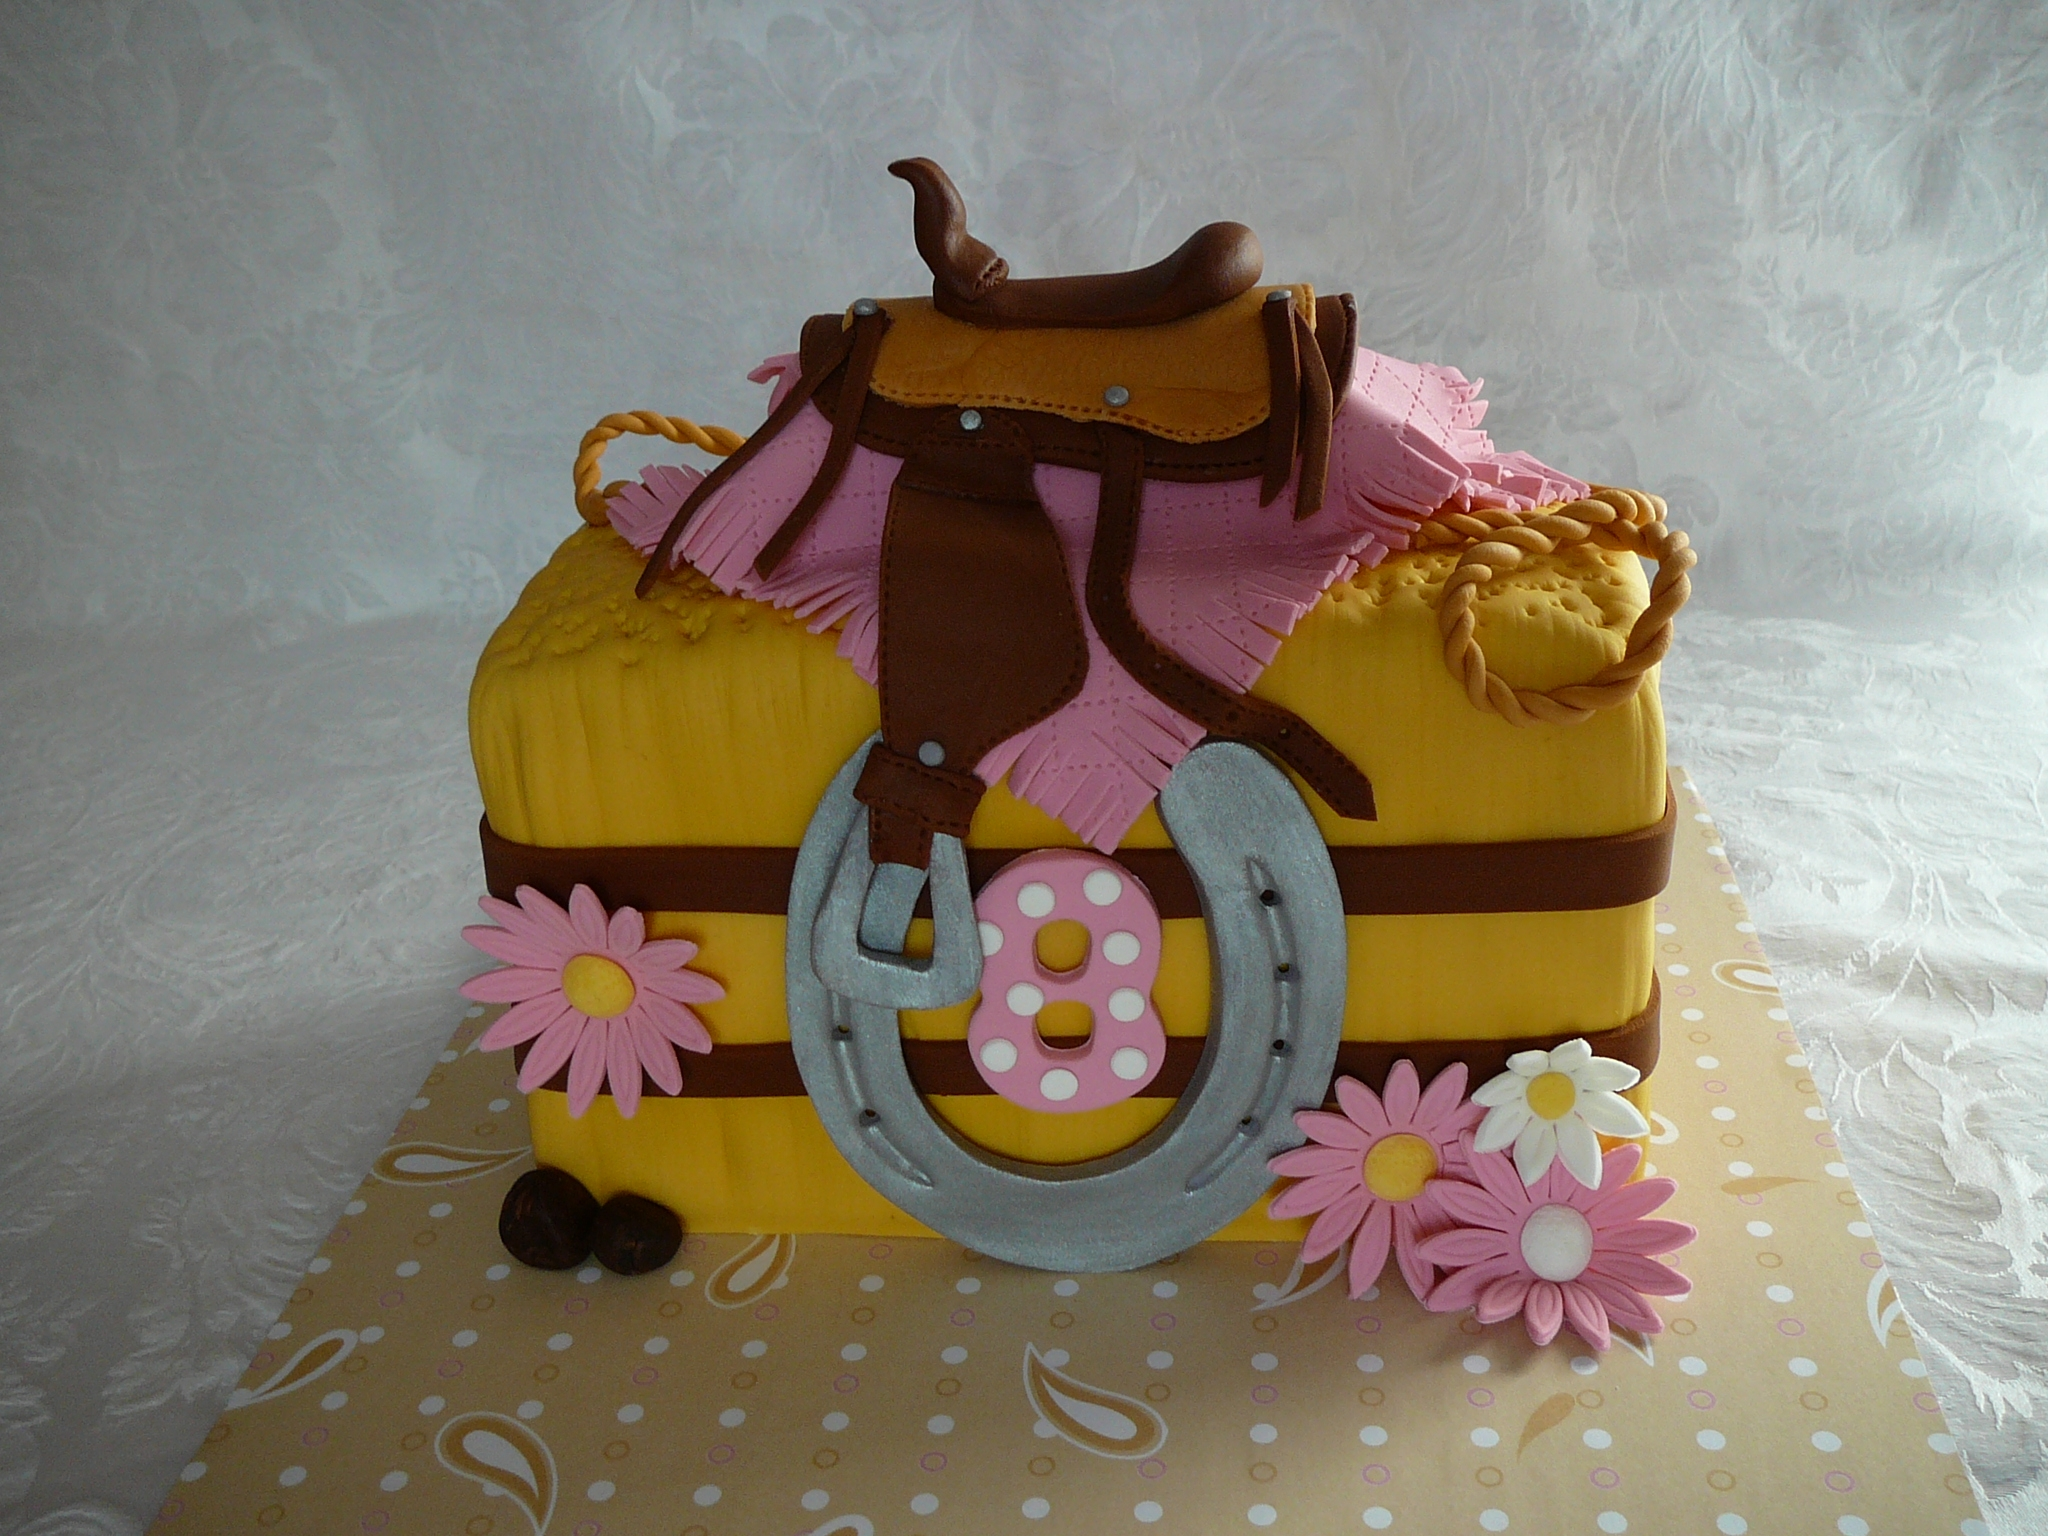 A western saddle on a bale of hay for a 8 years old girl. I put sliver luster dust on the horseshoe to make it look like real. This is a red velvet cake with creamcheese filling all covered with fondant. All details are fondant.